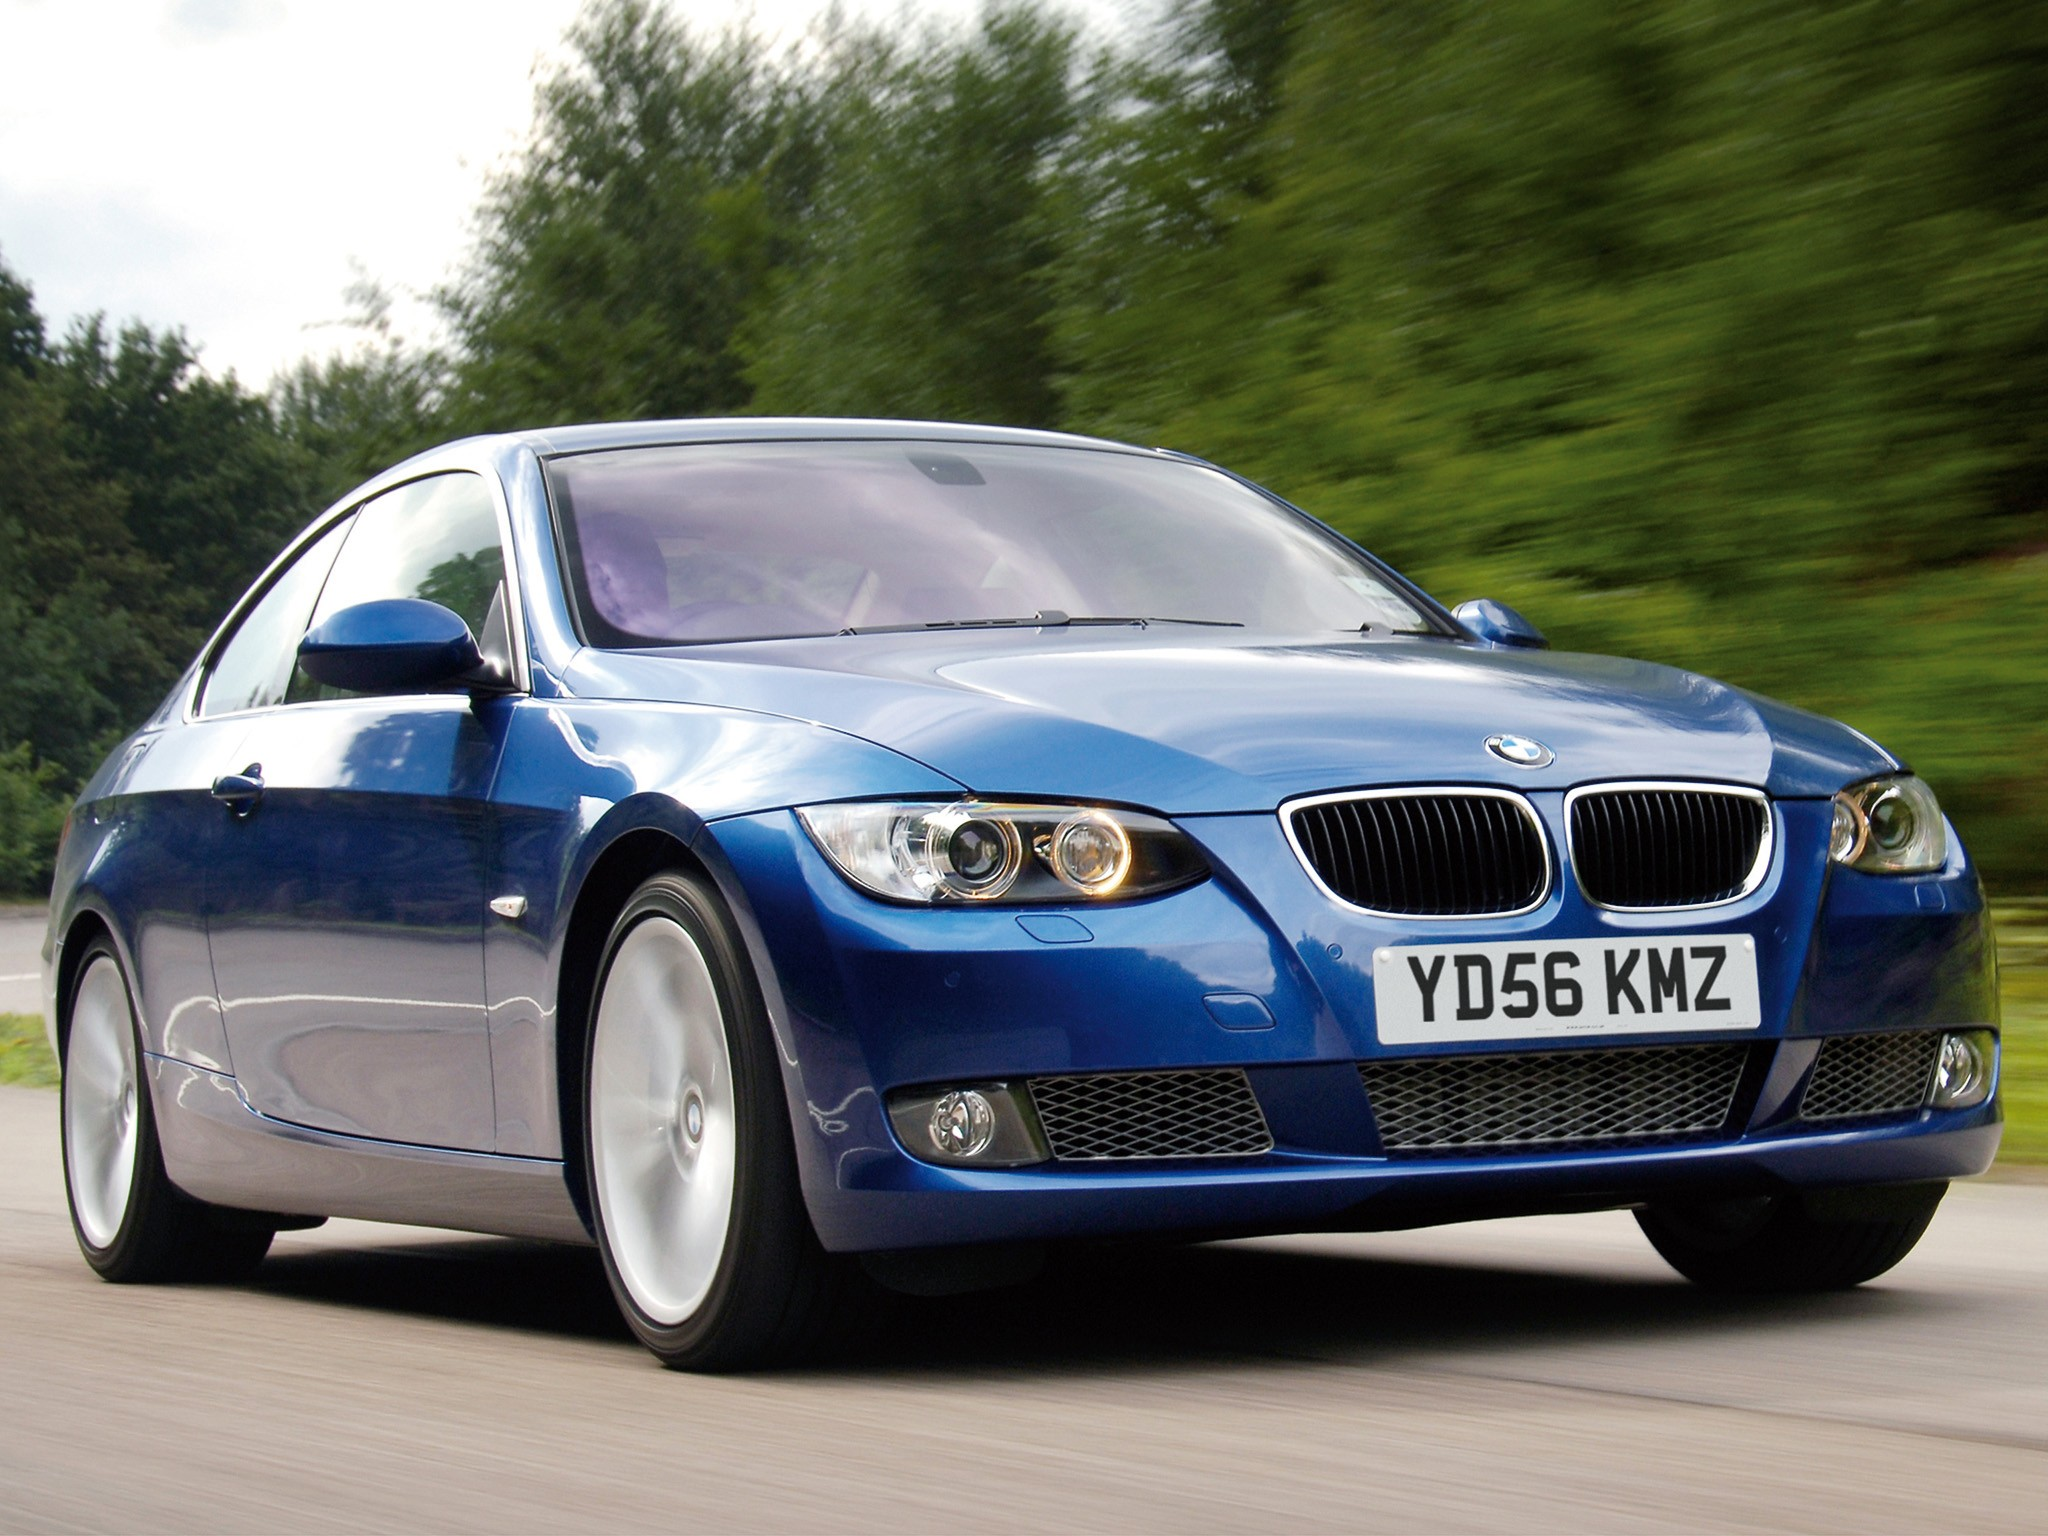 I Xdrive 0 60 >> BMW 3 Series Coupe (E92) specs - 2006, 2007, 2008, 2009, 2010 - autoevolution